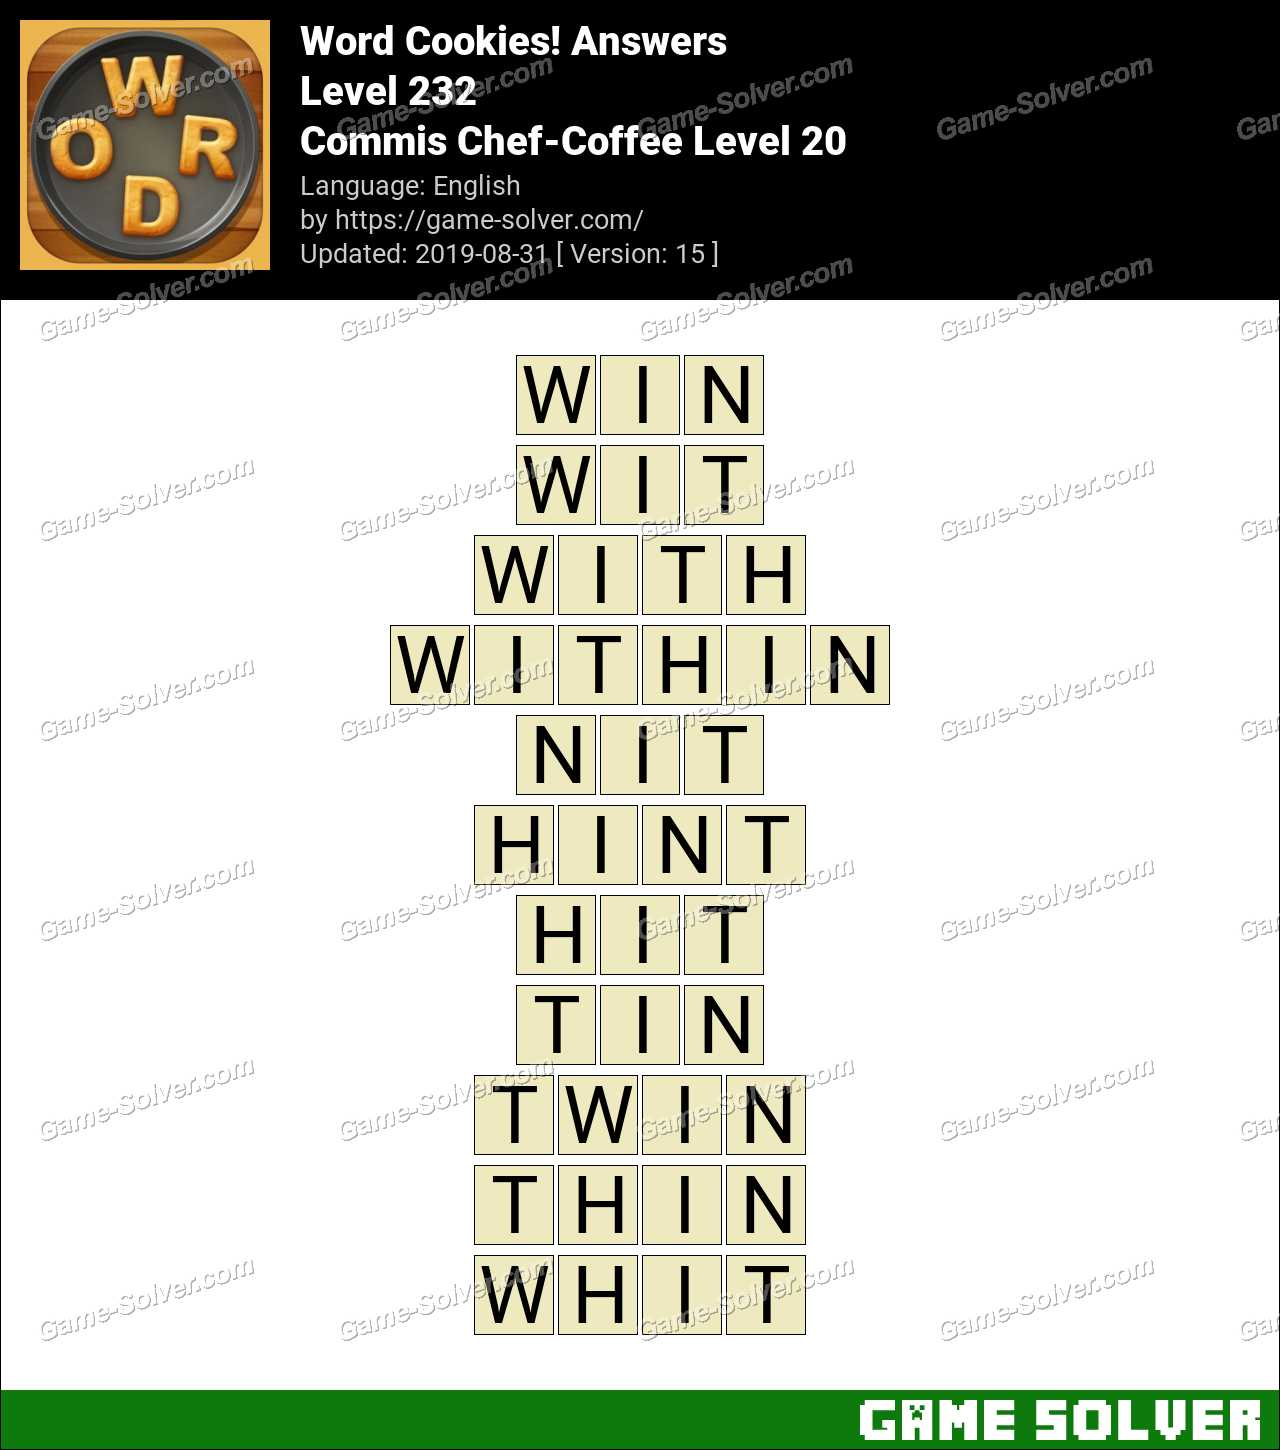 Word Cookies Commis Chef-Coffee Level 20 Answers